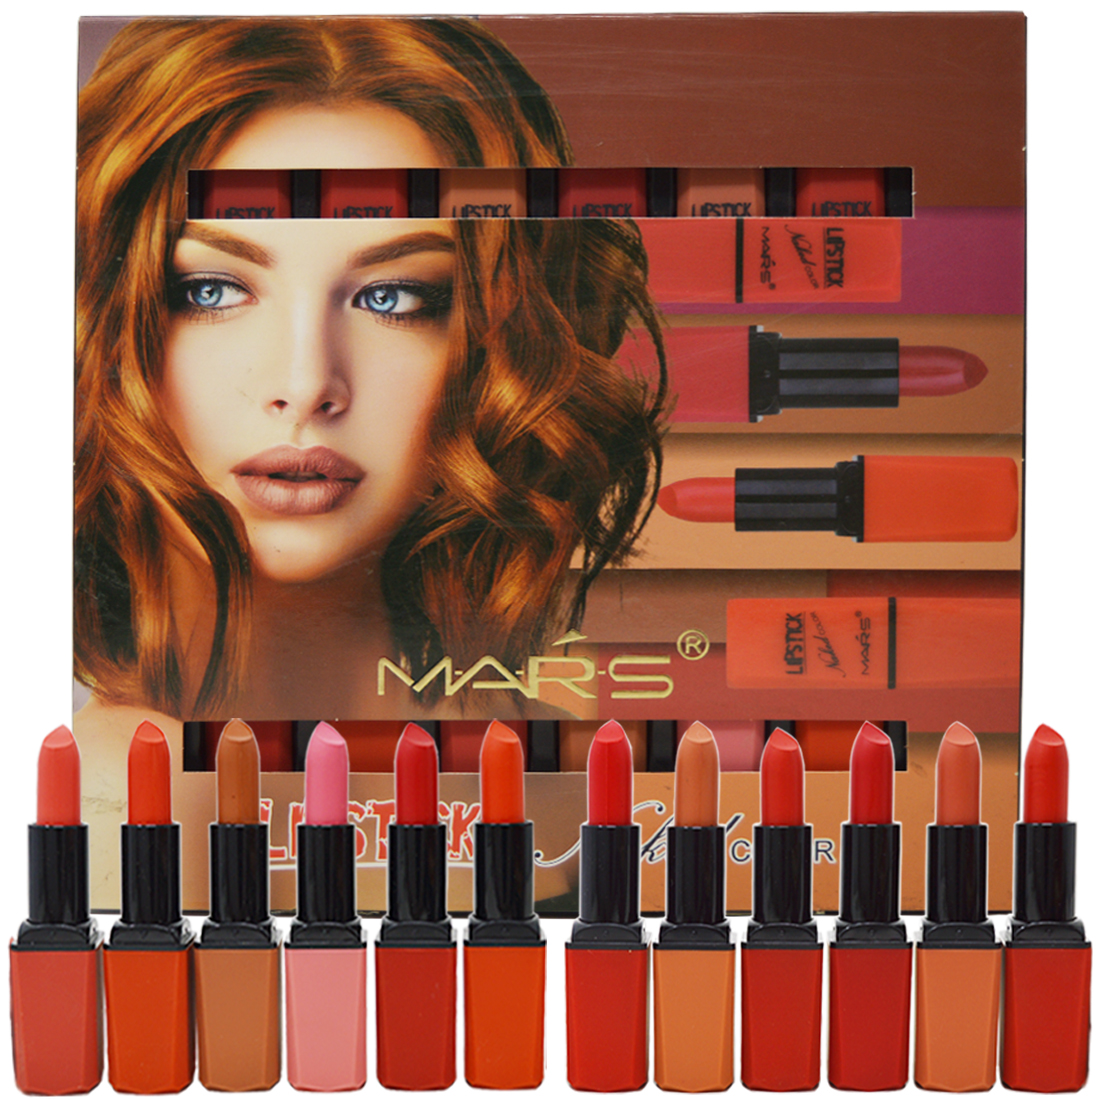 Mars Naked Color Matte Lipstick- (0683B)- Multicolor- 3.5g Each- Pack of 12 With Lilium Hand Cleanser